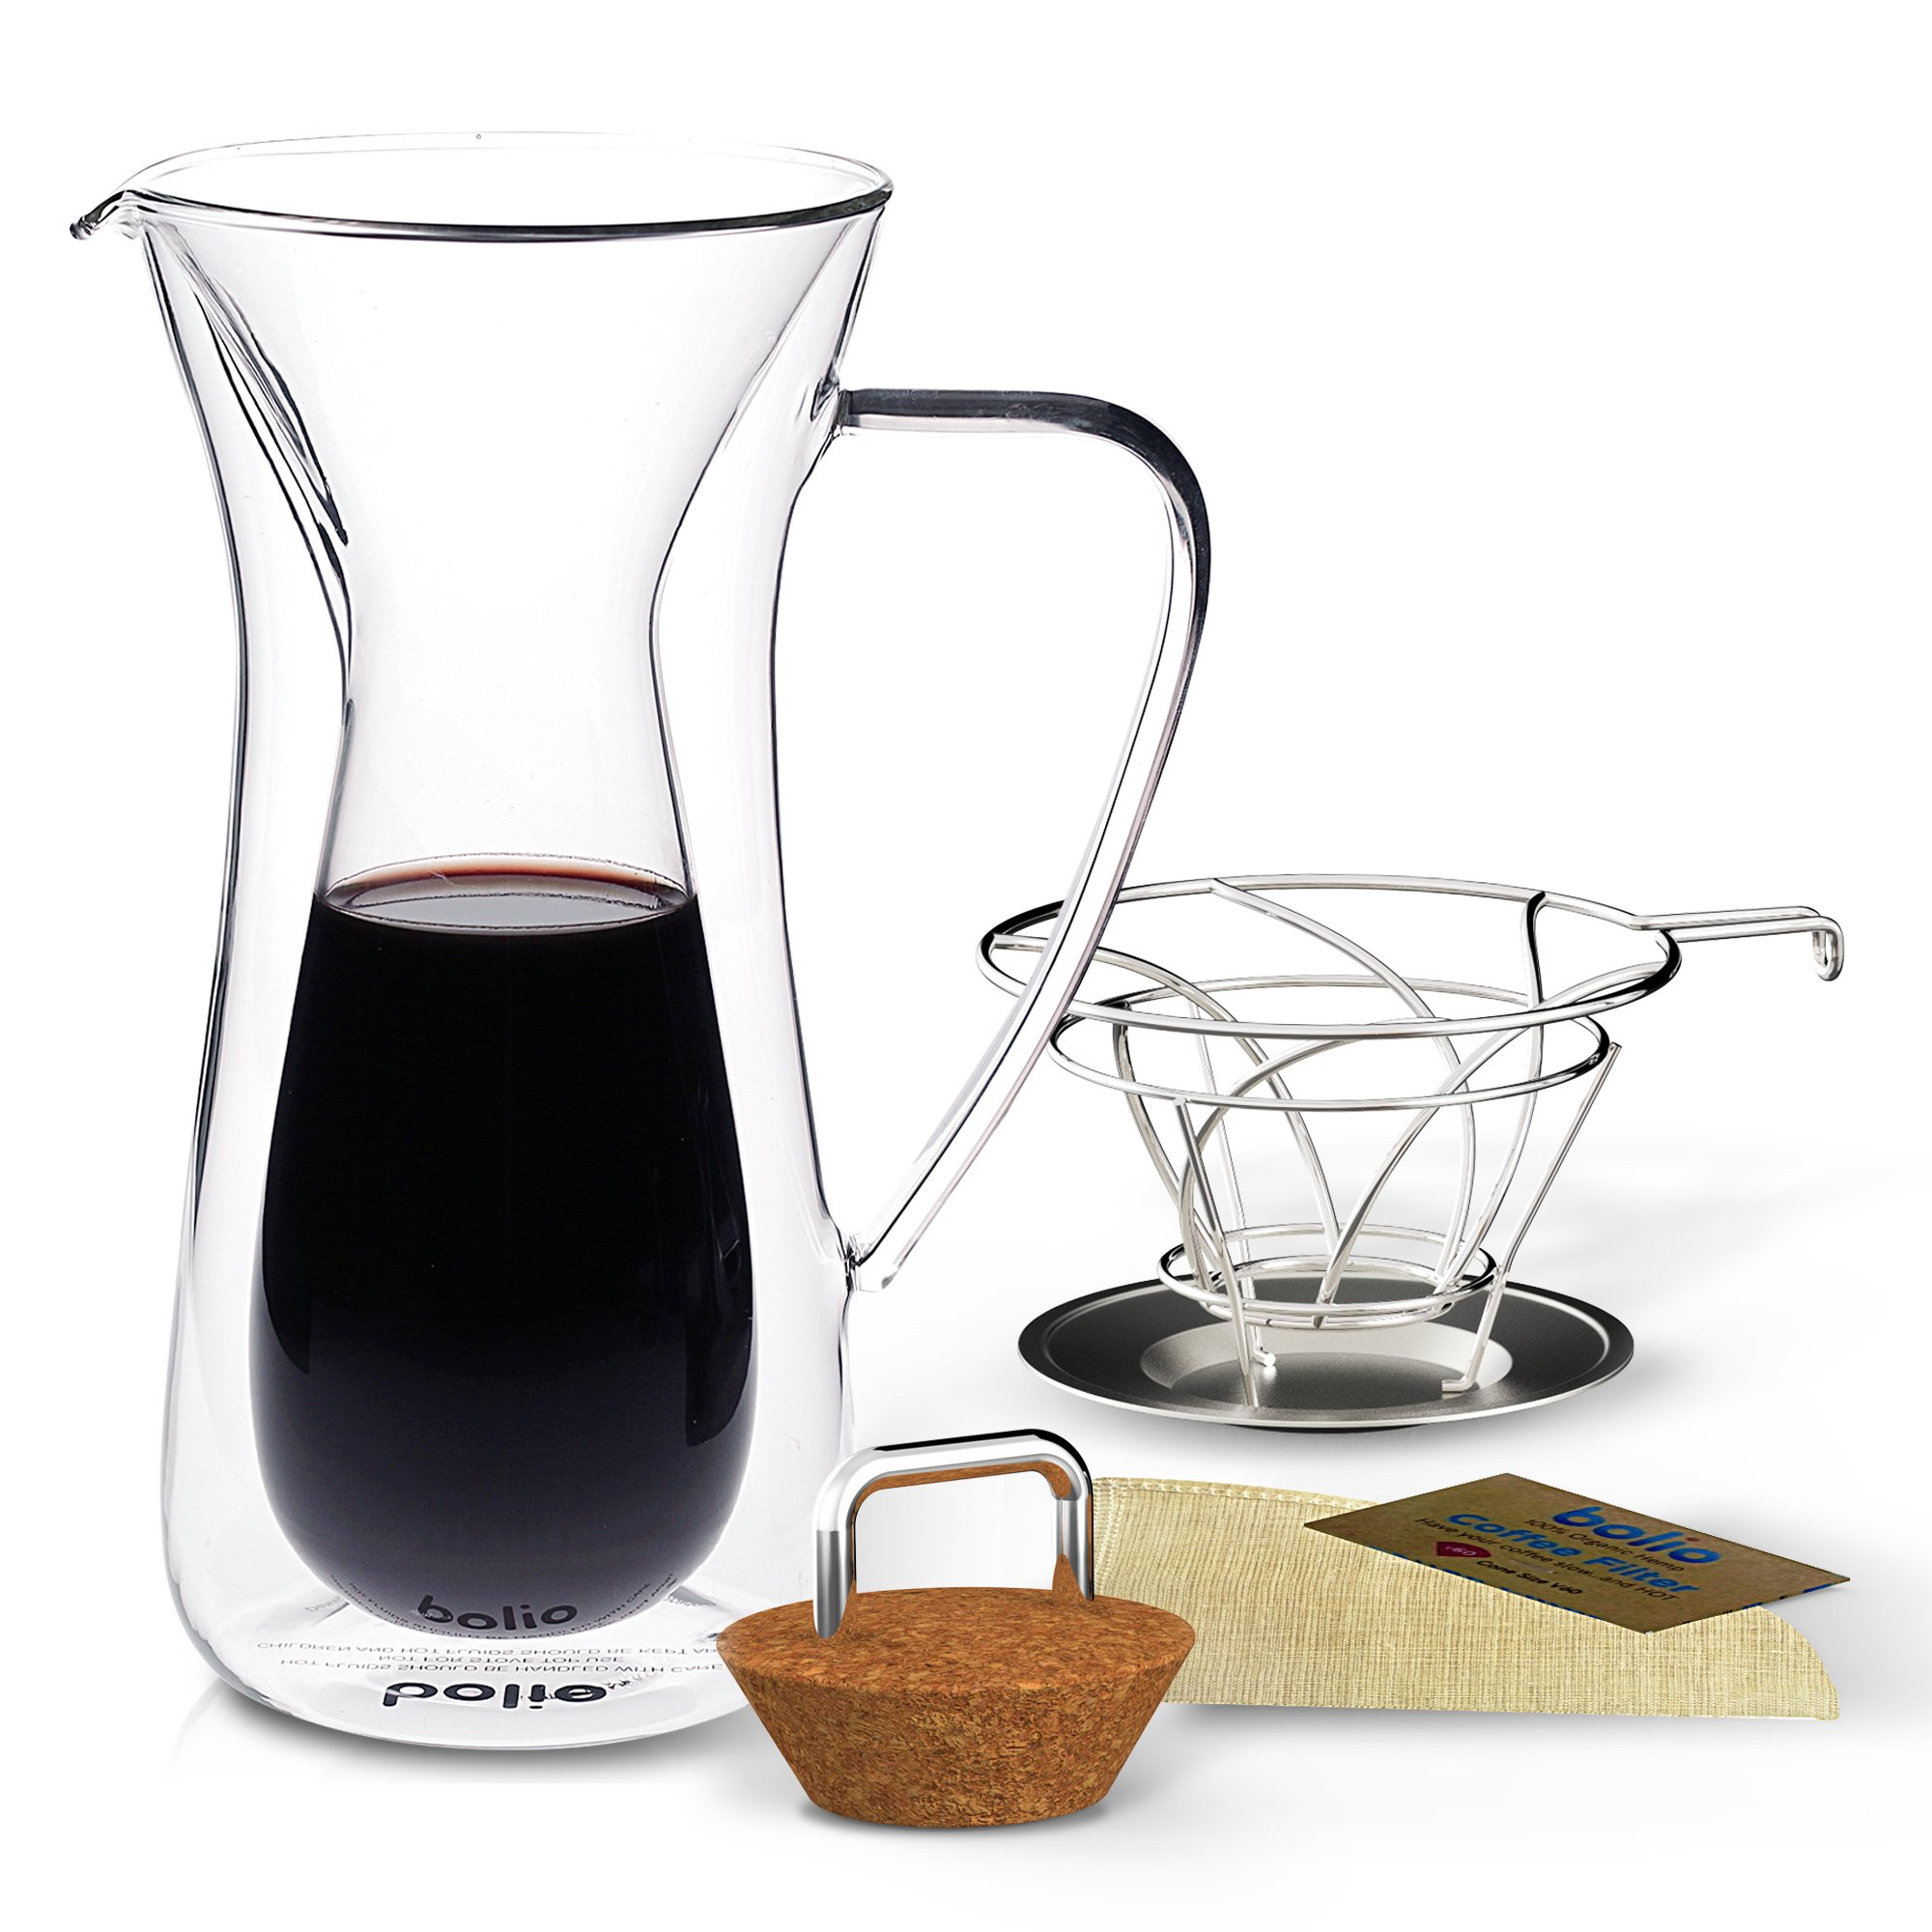 Double Wall Pour Over Coffee Maker, Stainless Steel Filter Basket and Cradle & Hemp Cone Coffee Filter -Triple Combo - Best With Filters Like Osaka Hario Chemex Willow & Everett By Bolio